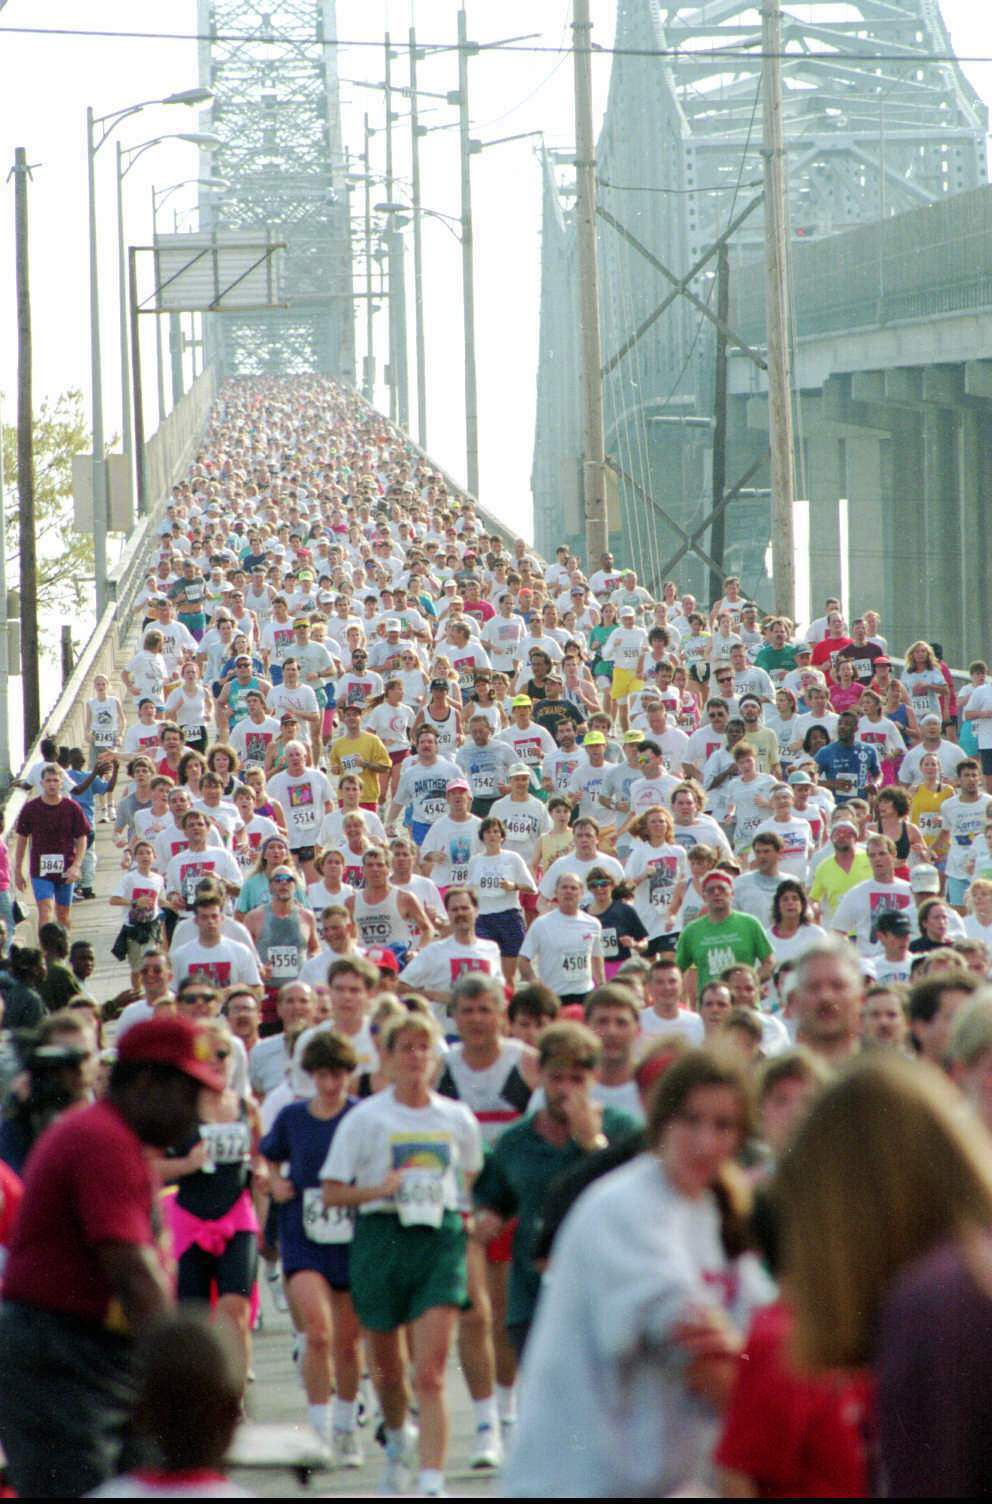 The Bridge Run: By the Numbers